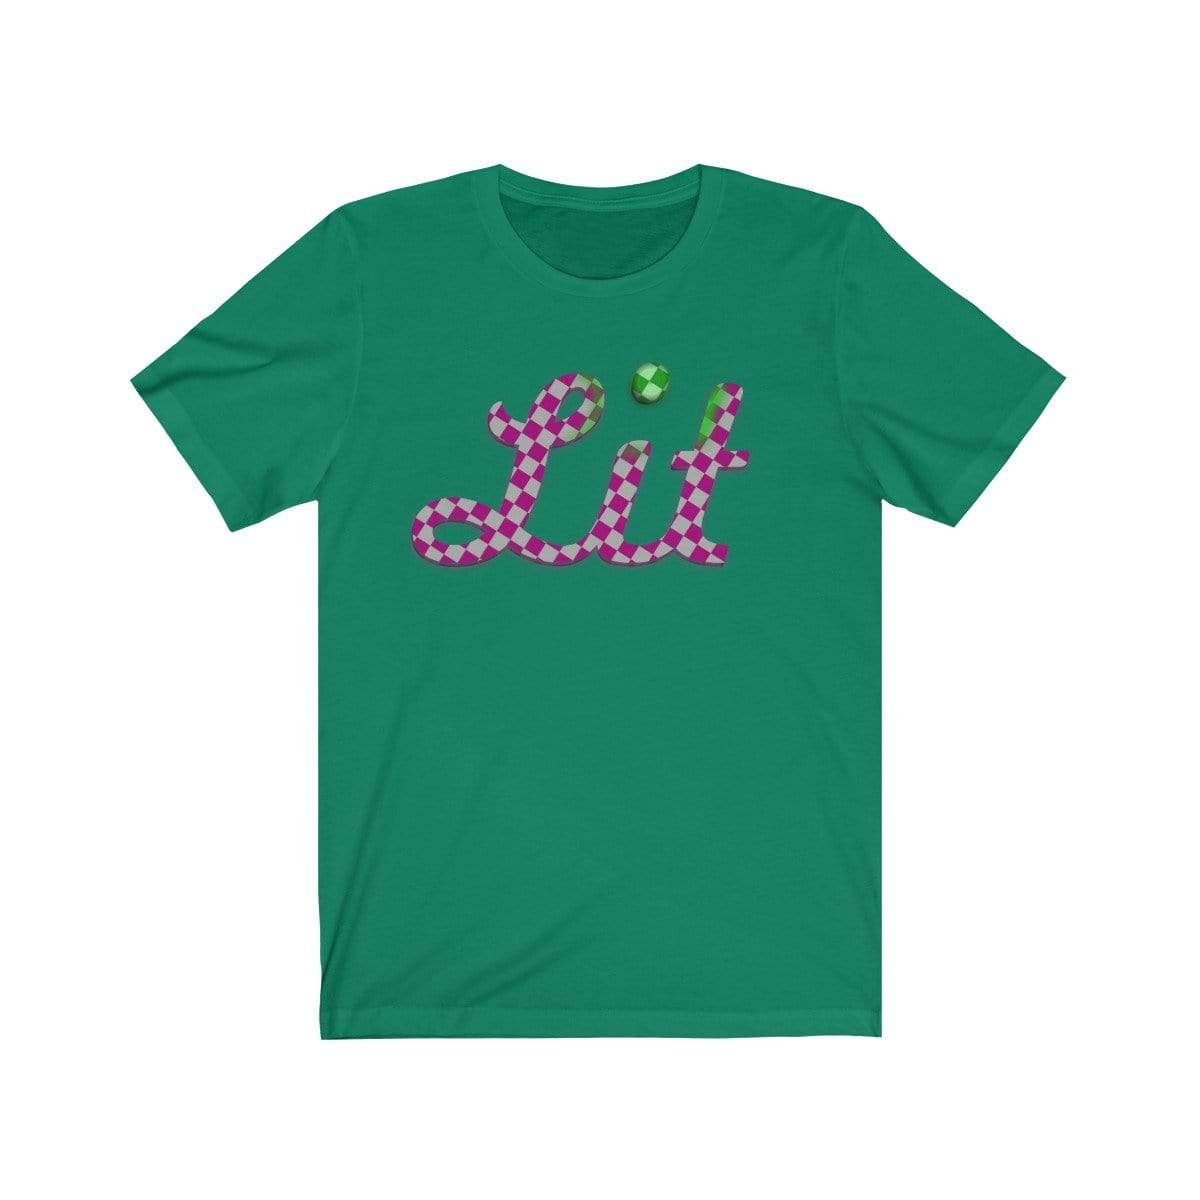 Plumskum T-Shirt Kelly / S Pink Checkered Lit T-shirt